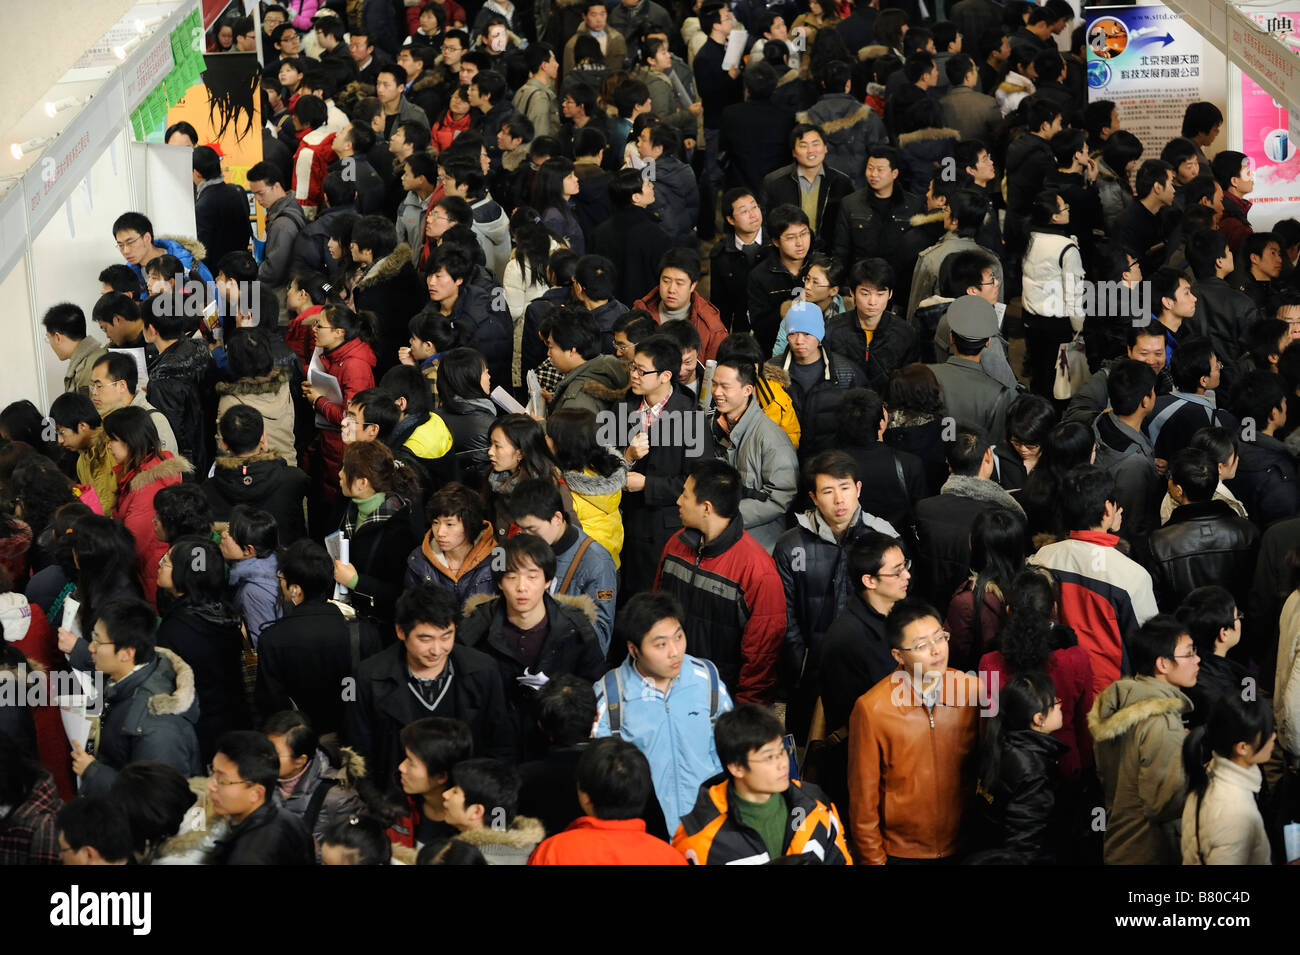 Job seekers crowd booths at a job fair in Beijing on February 8, 2009. - Stock Image